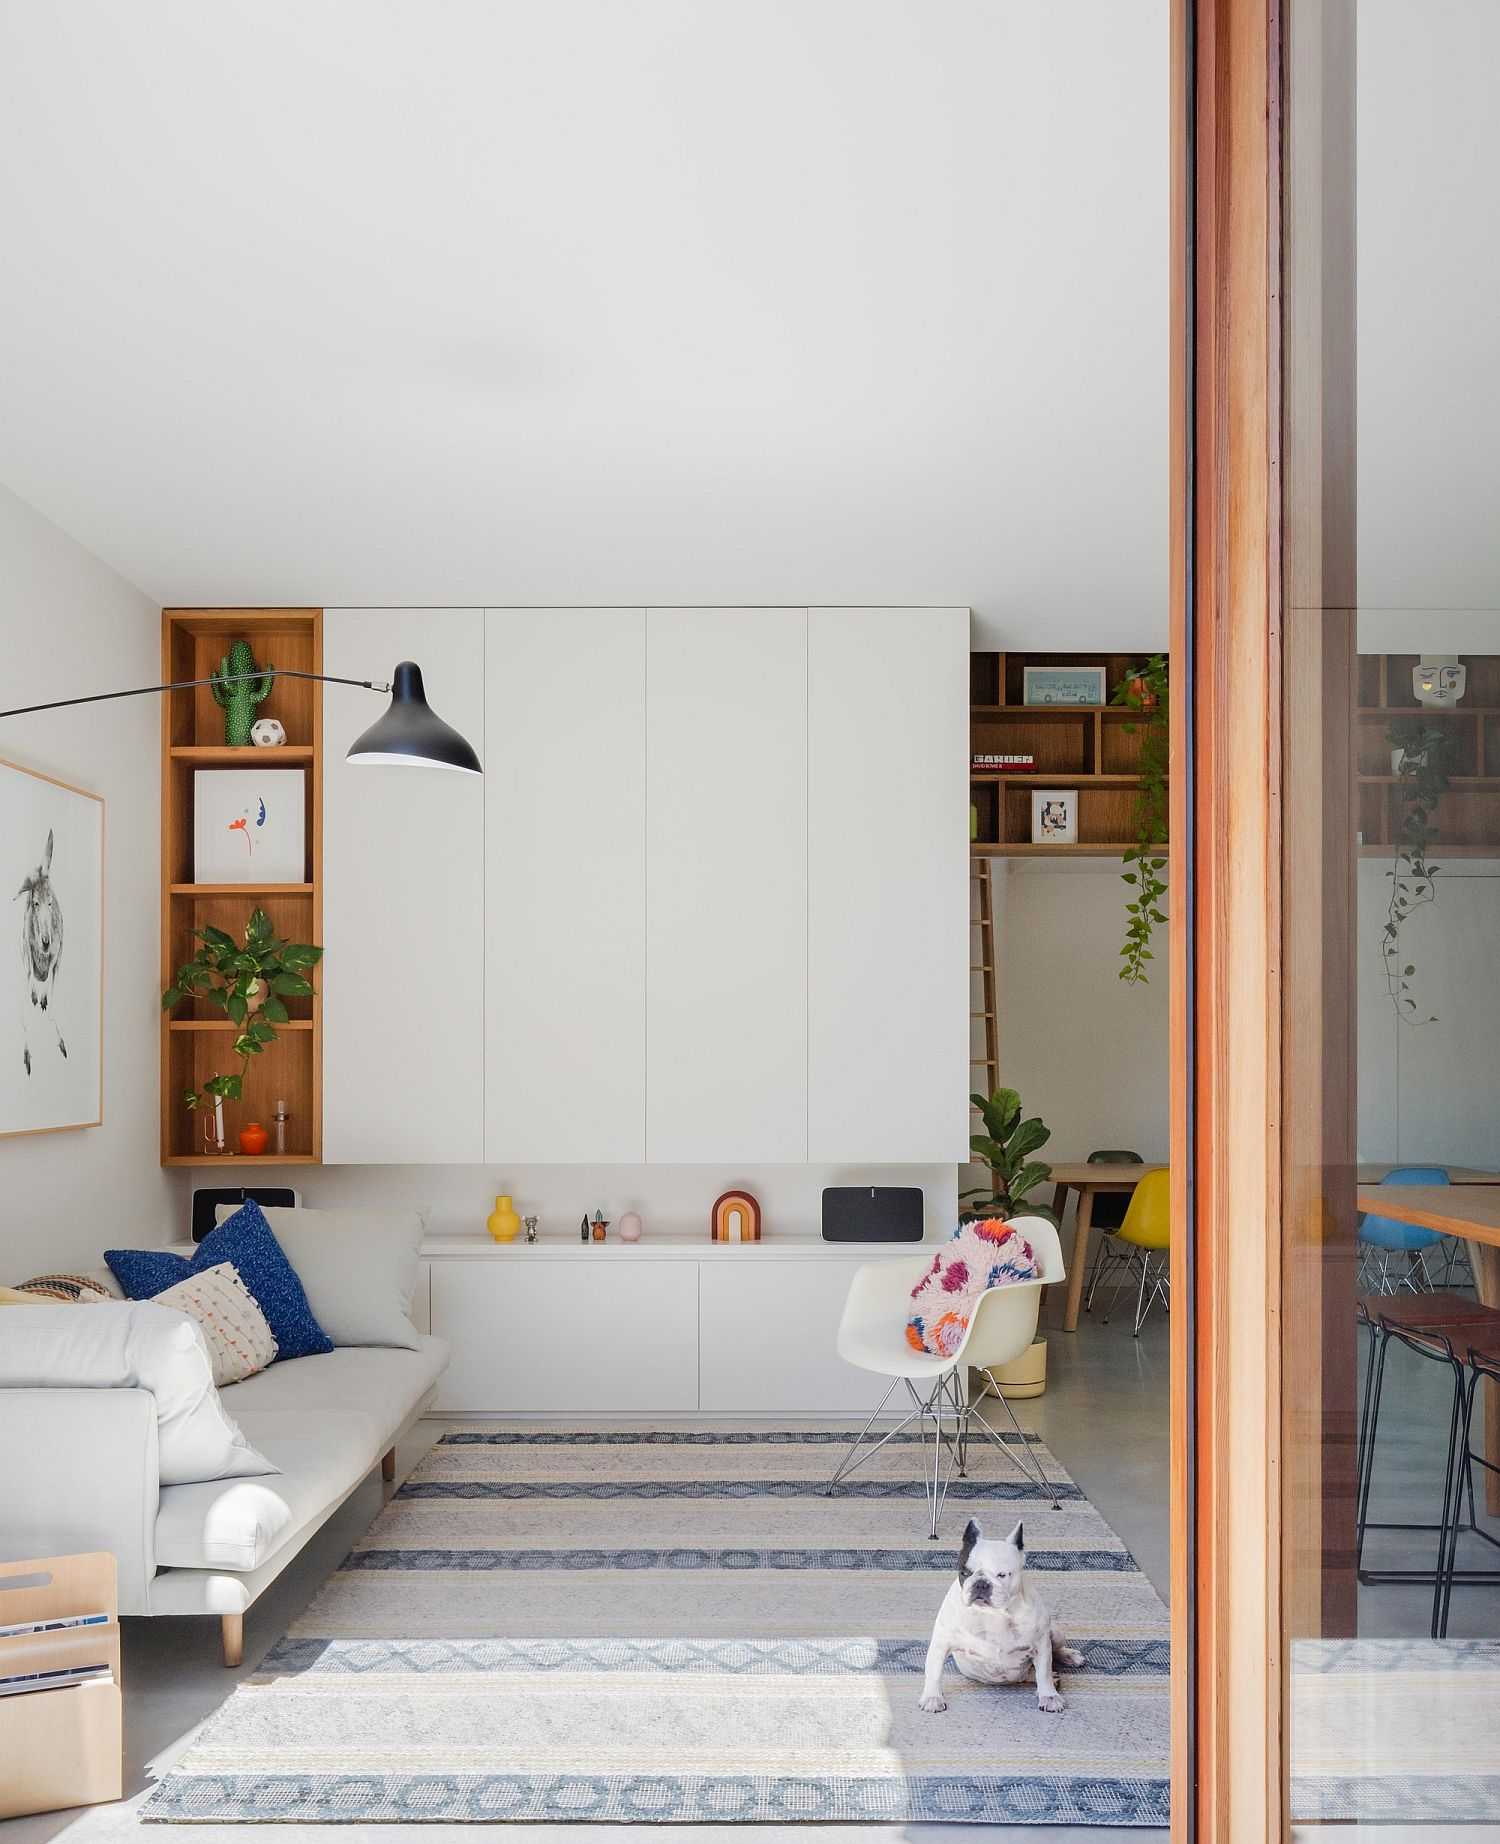 Interior in wood and white combines best of modern and Japanese styles